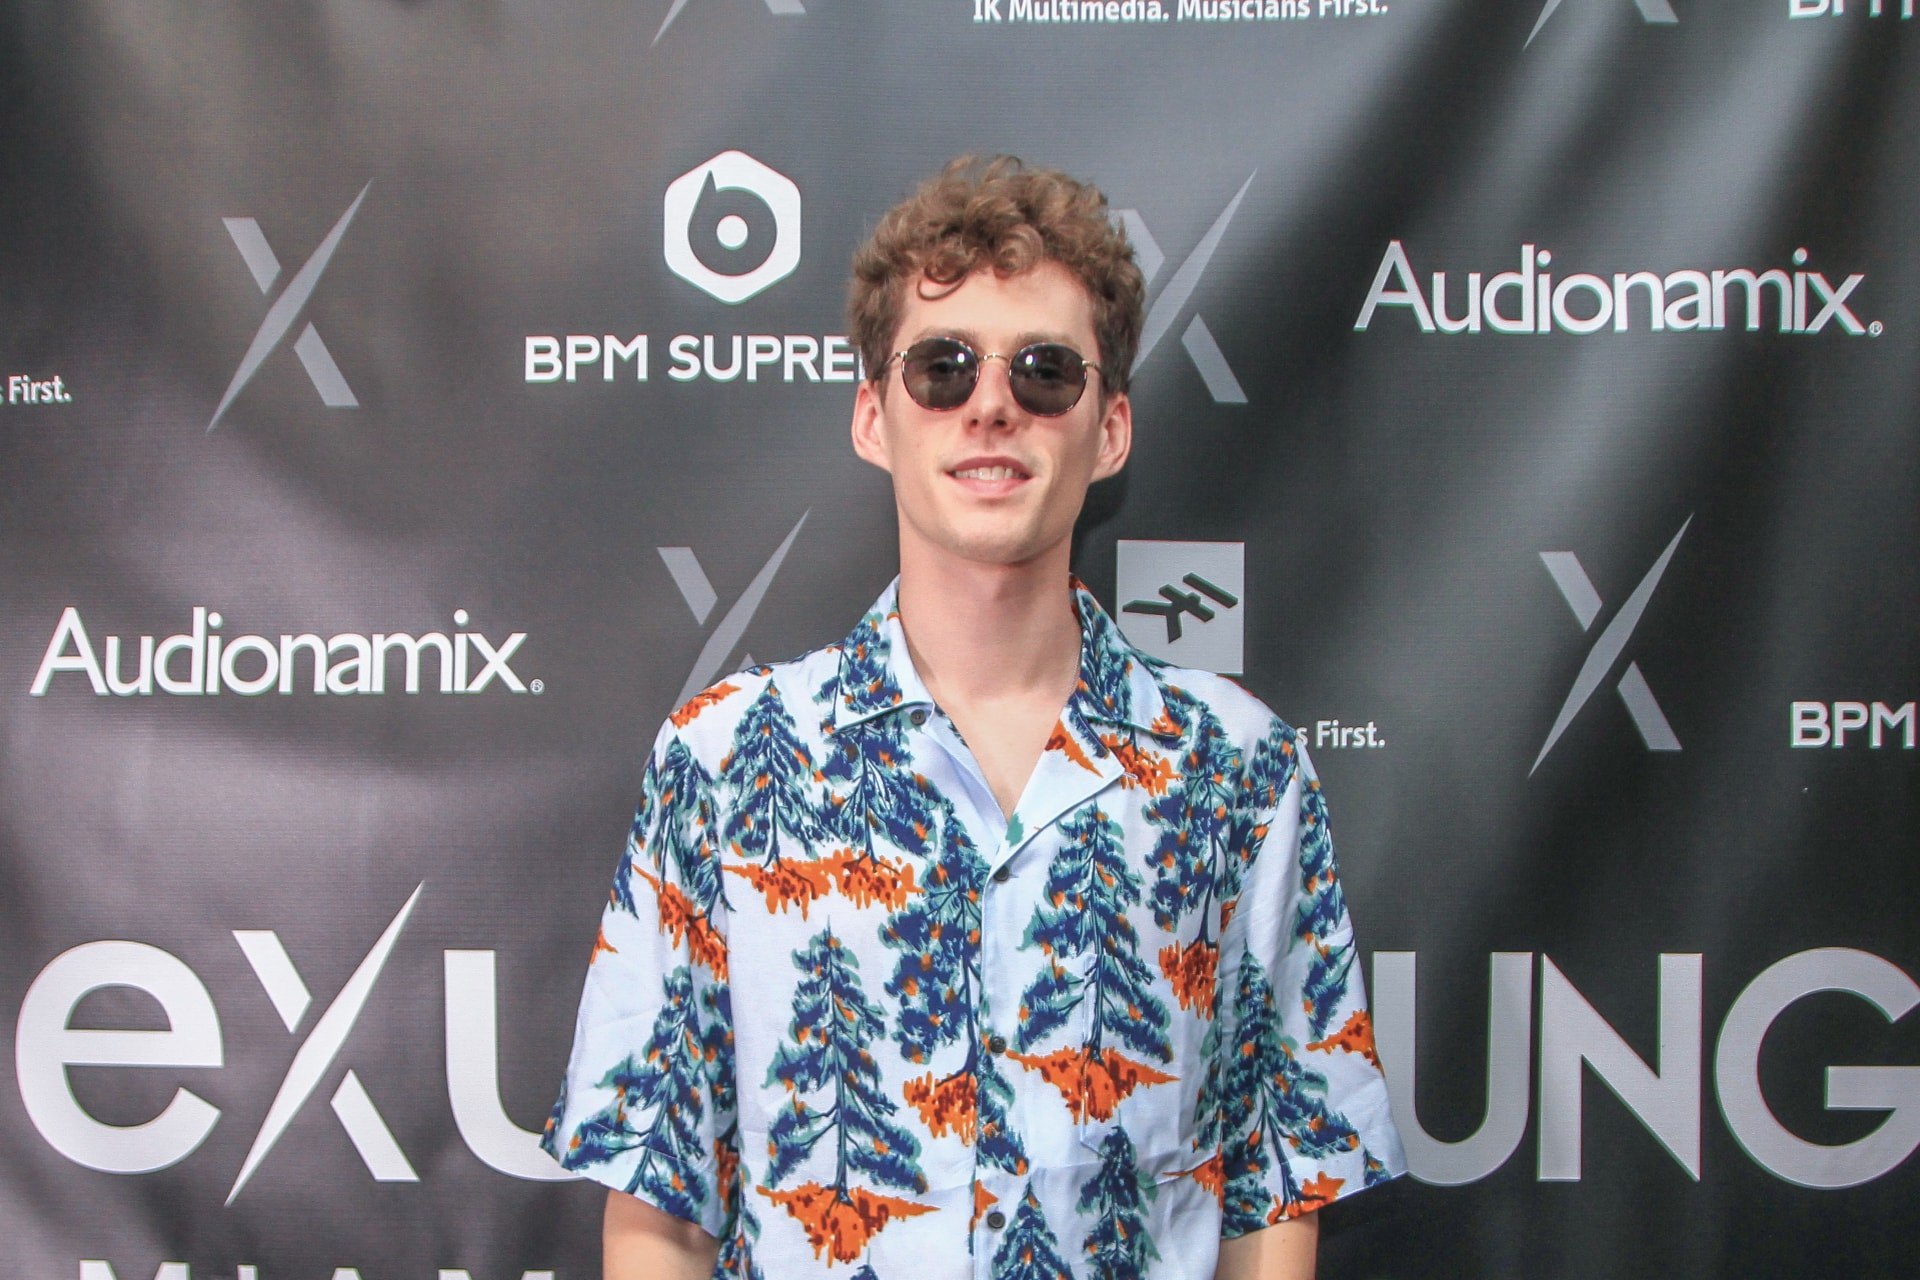 Lost Frequencies MMW-2019-455